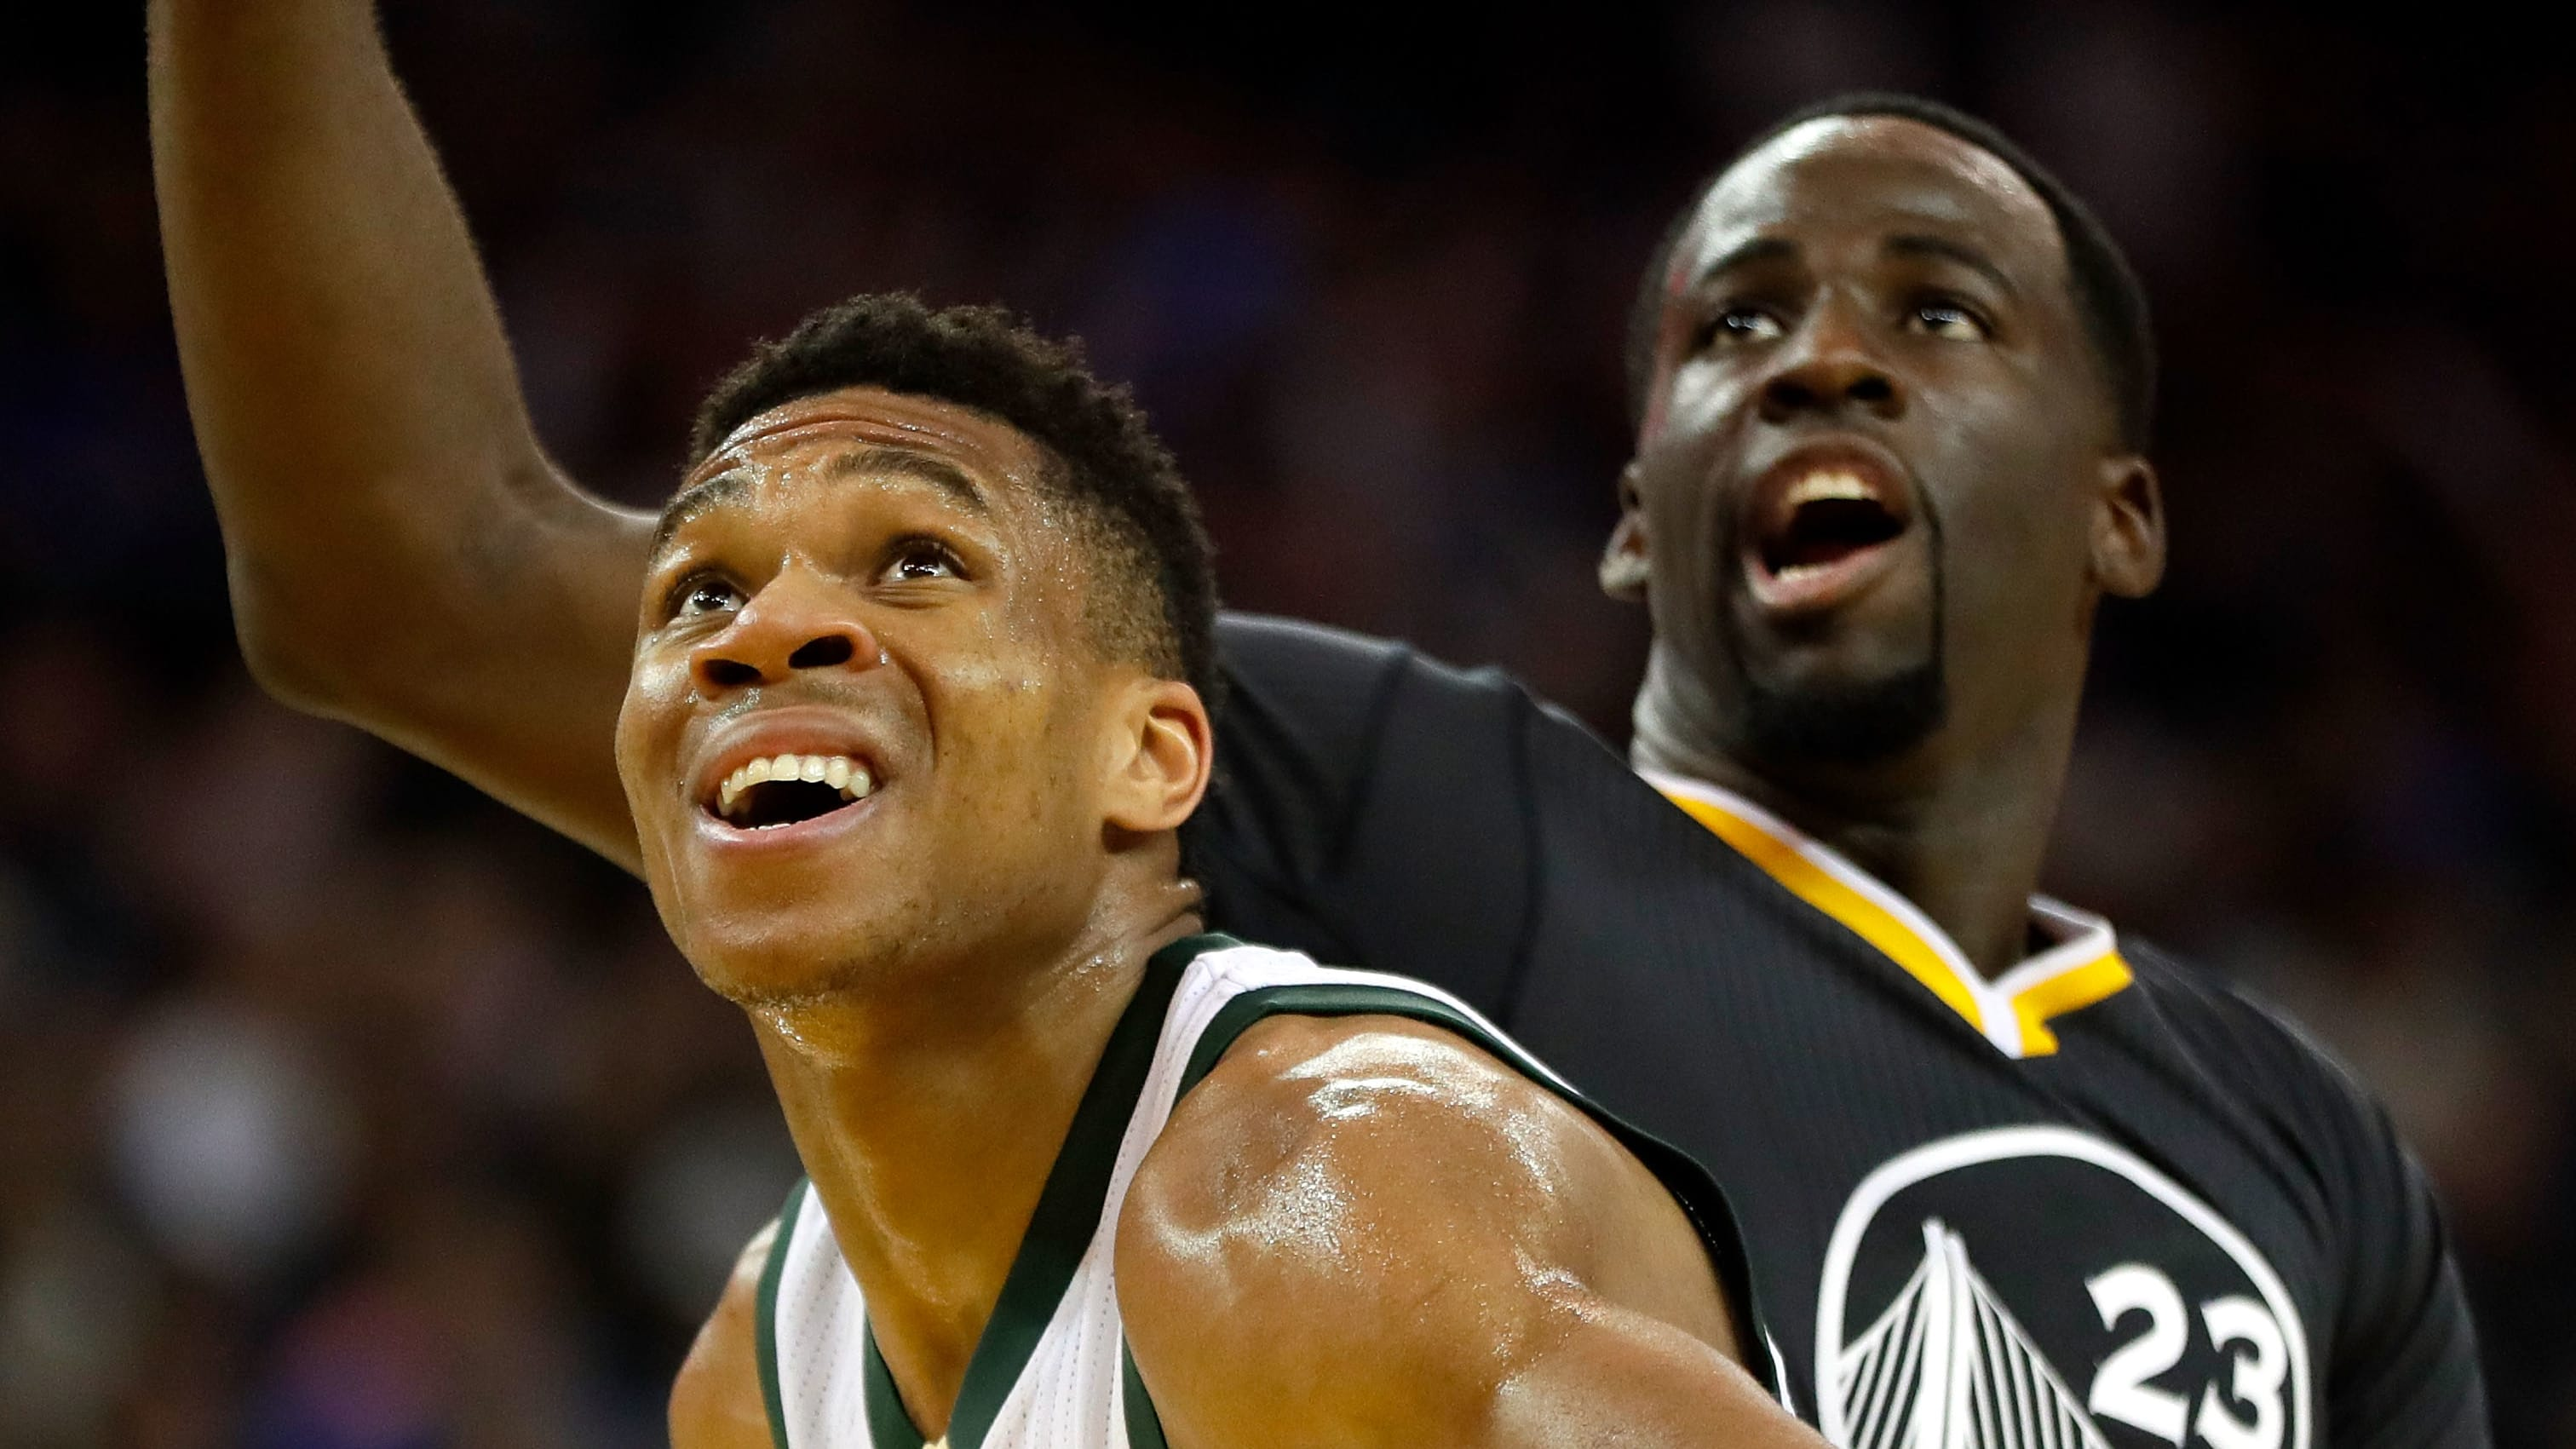 OAKLAND, CA - MARCH 18:  Giannis Antetokounmpo #34 of the Milwaukee Bucks and Draymond Green #23 of the Golden State Warriors box out during a free throw during the game at ORACLE Arena on March 18, 2017 in Oakland, California.  (Photo by Jamie Squire/Getty Images)